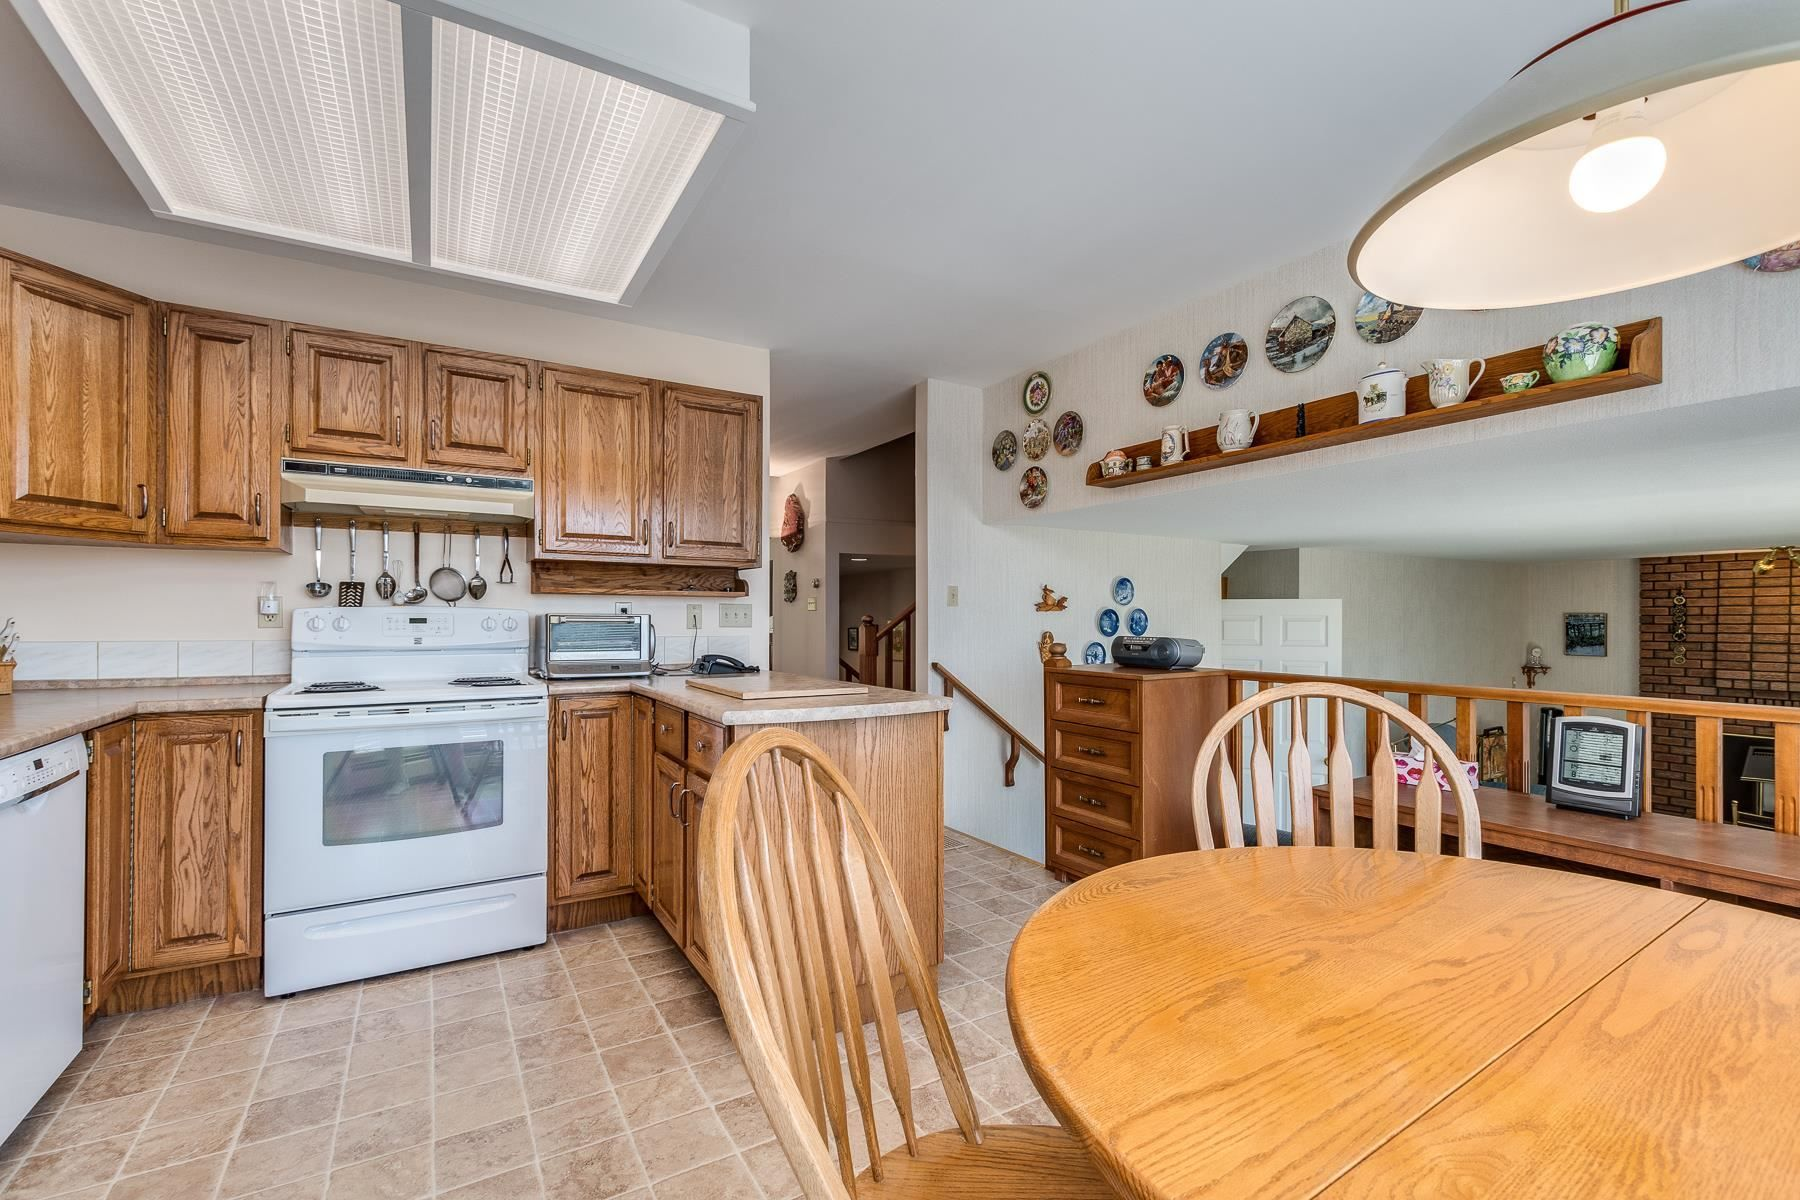 """Photo 12: Photos: 378 BALFOUR Drive in Coquitlam: Coquitlam East House for sale in """"DARTMOOR HEIGHTS"""" : MLS®# R2600428"""